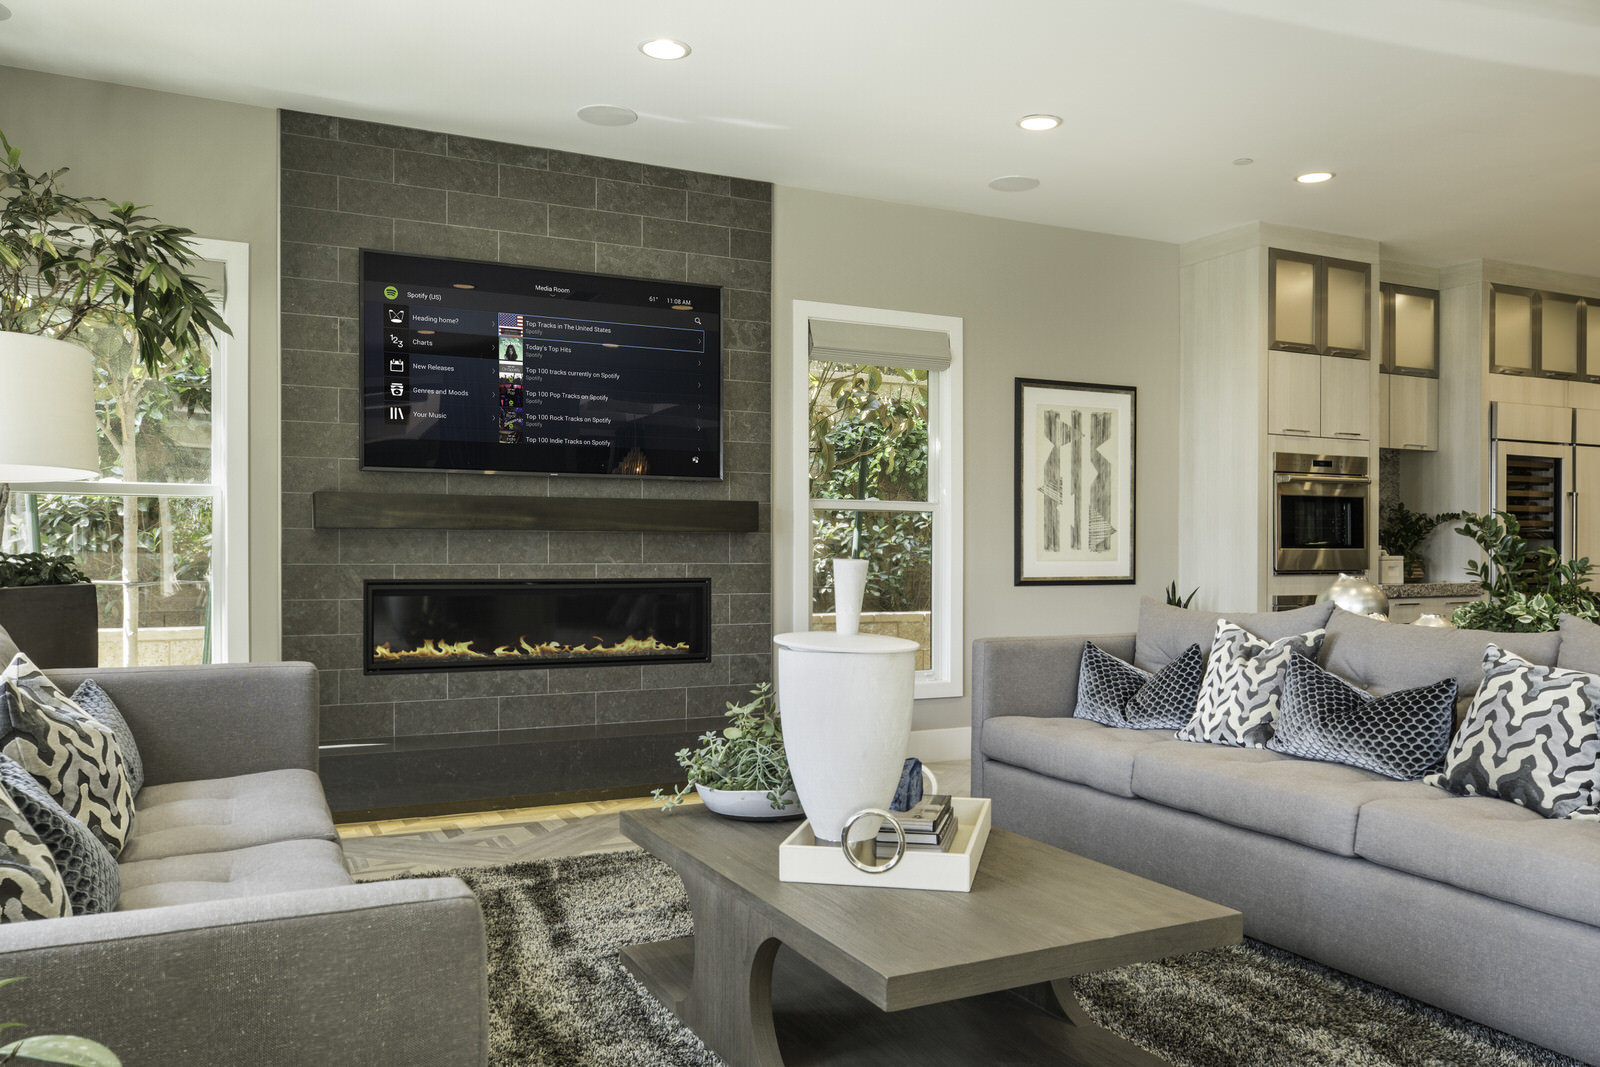 Control4_Home_Automation_Living_Room_Modern_Navigator_Grey_Sofas_Charcoal_Tiled_Wall_Brown_Wooden_Floor_Contemporary